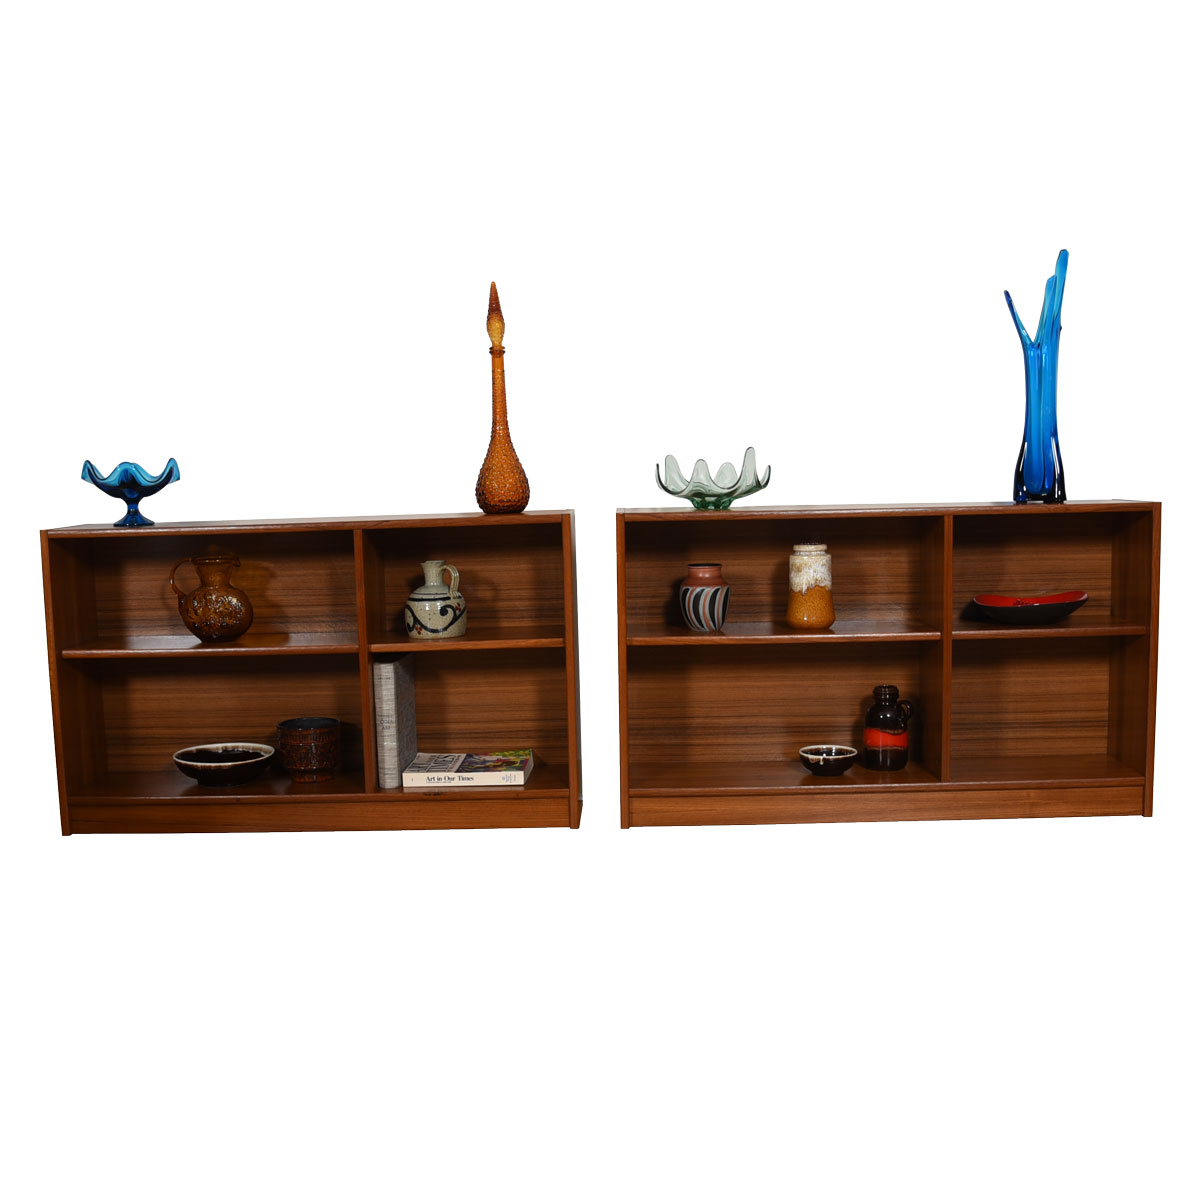 Pair of Danish Modern Teak Low Bookcases (priced individually)